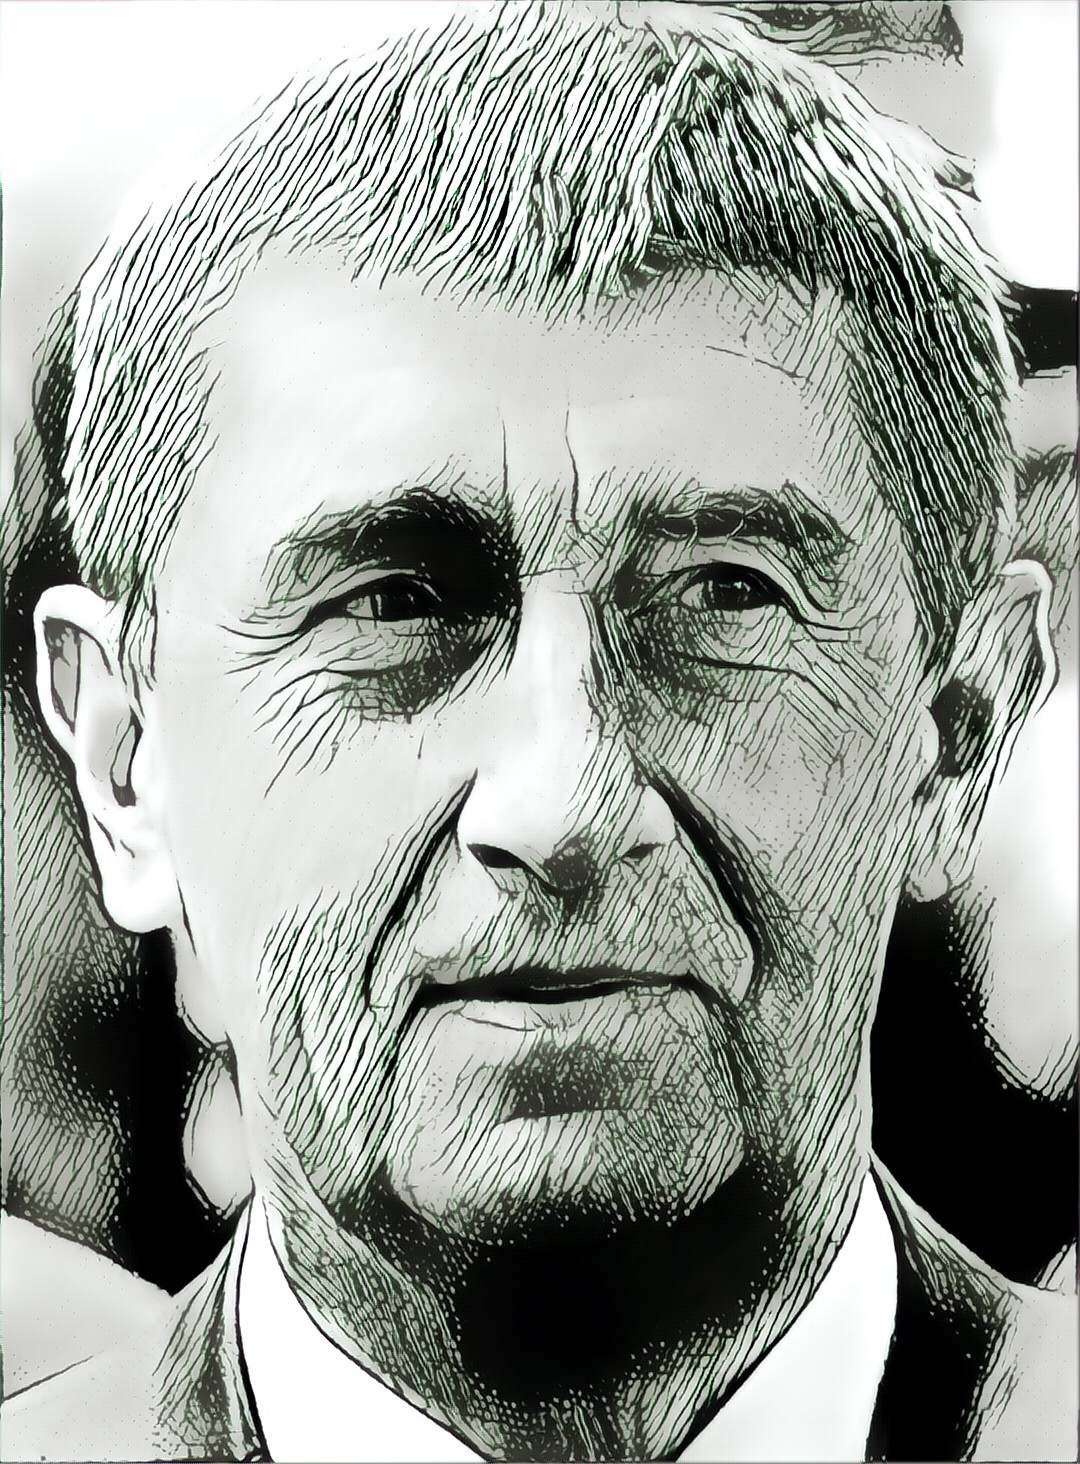 67% Want Babiš to Face the Music - Support Lifting Immunity for Prosecution - Czech Points